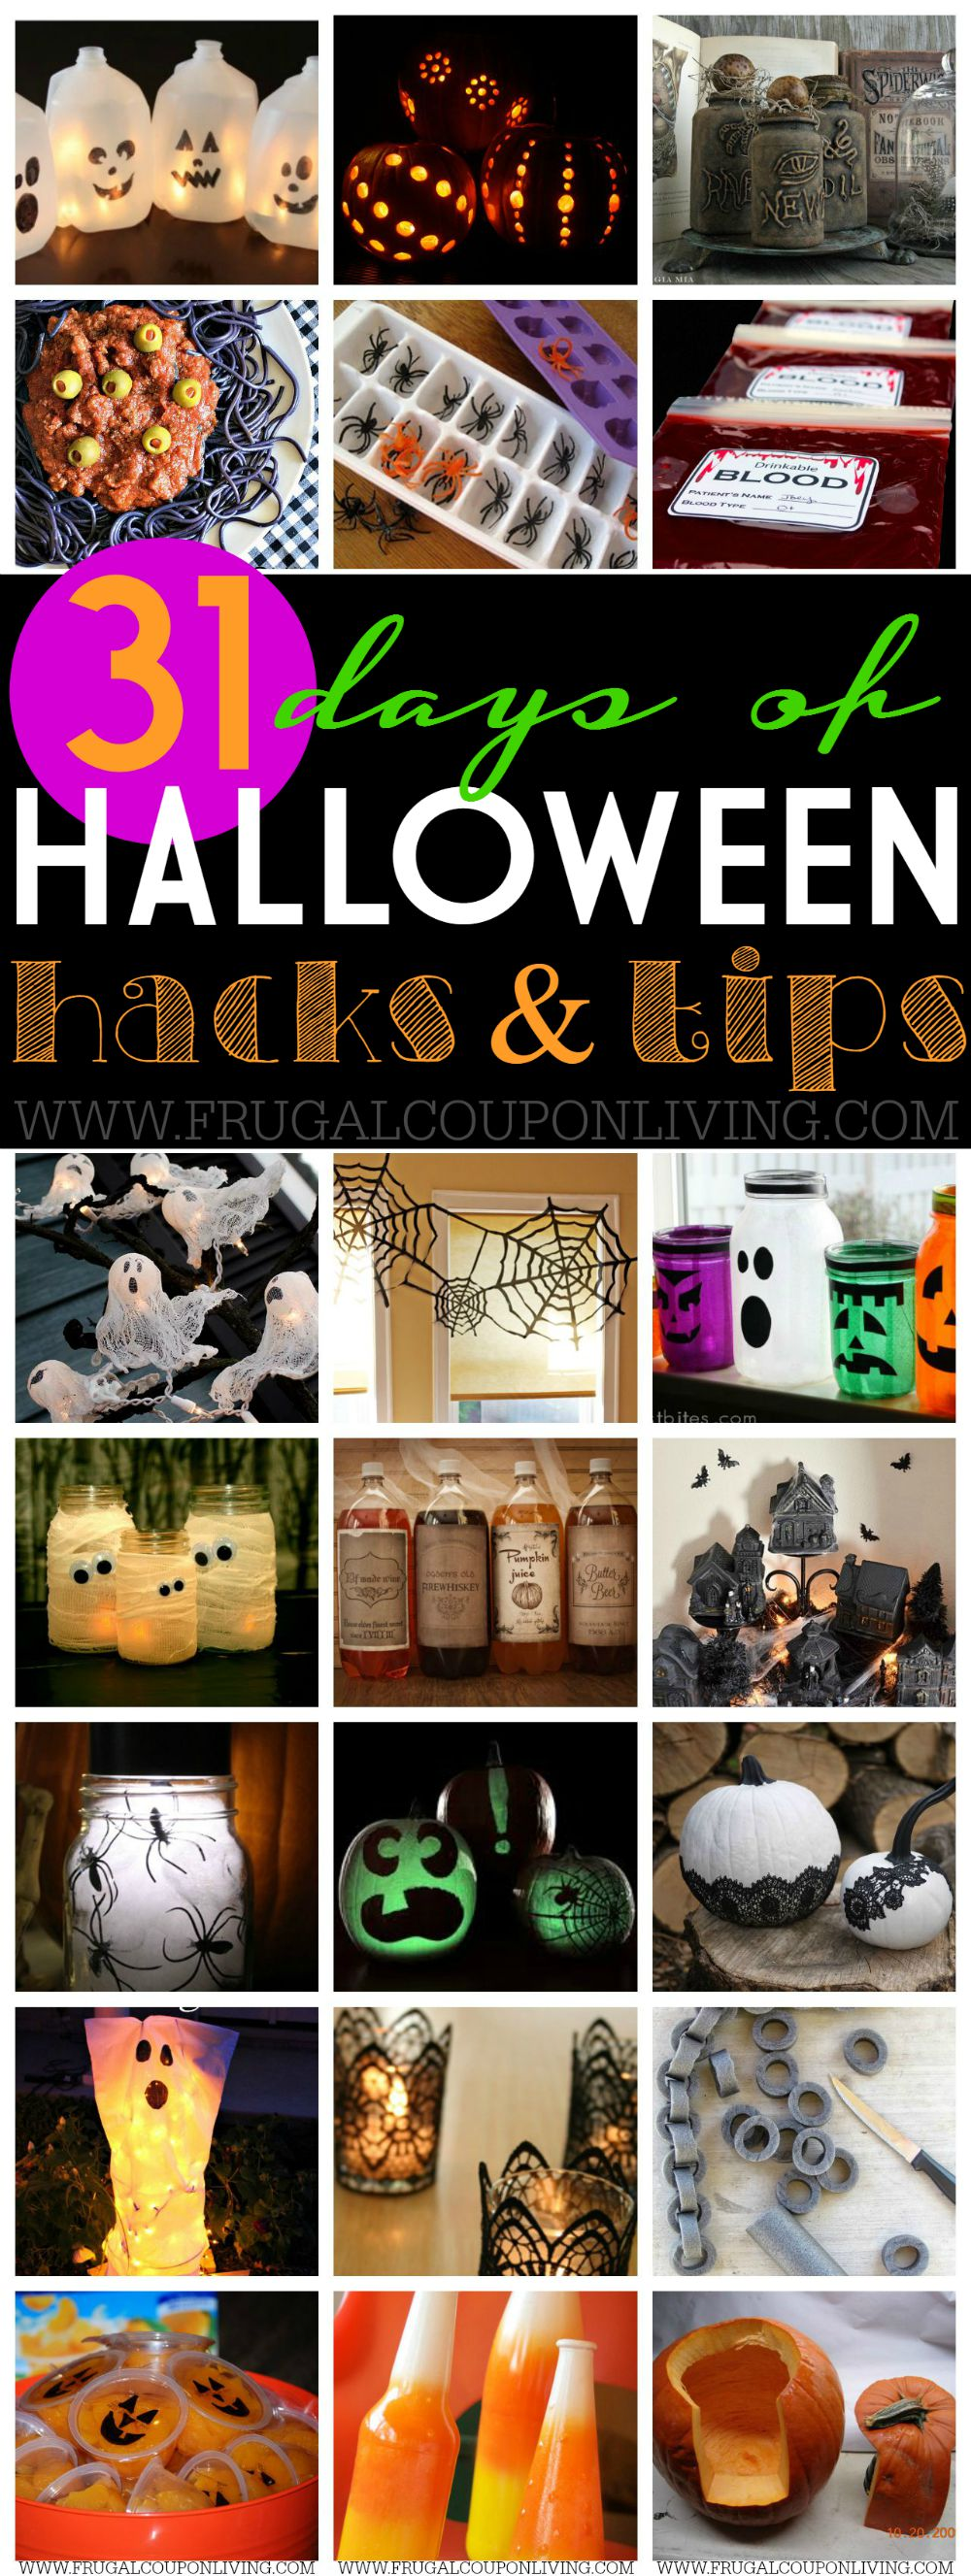 Halloween-hacks-and-tips-Collage-frugal-coupon-living-1000